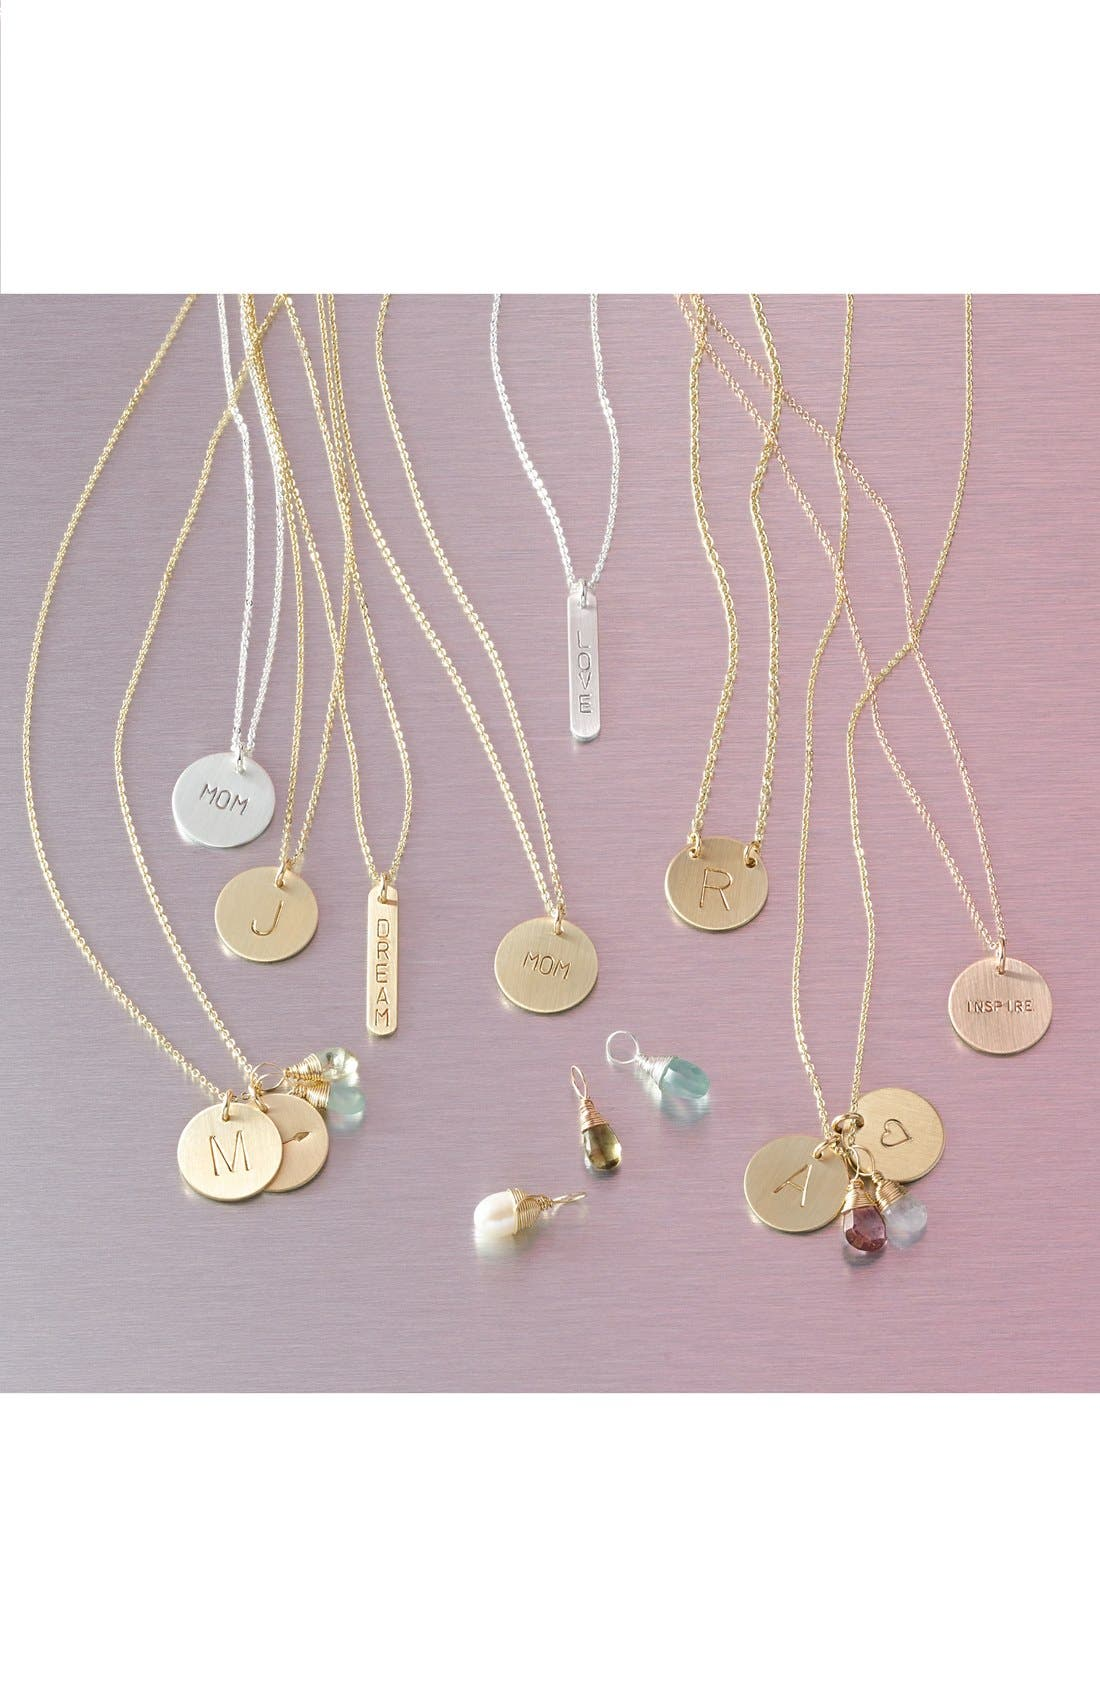 14k-Gold Fill Anchored Initial Disc Necklace,                             Alternate thumbnail 3, color,                             14K GOLD FILL A